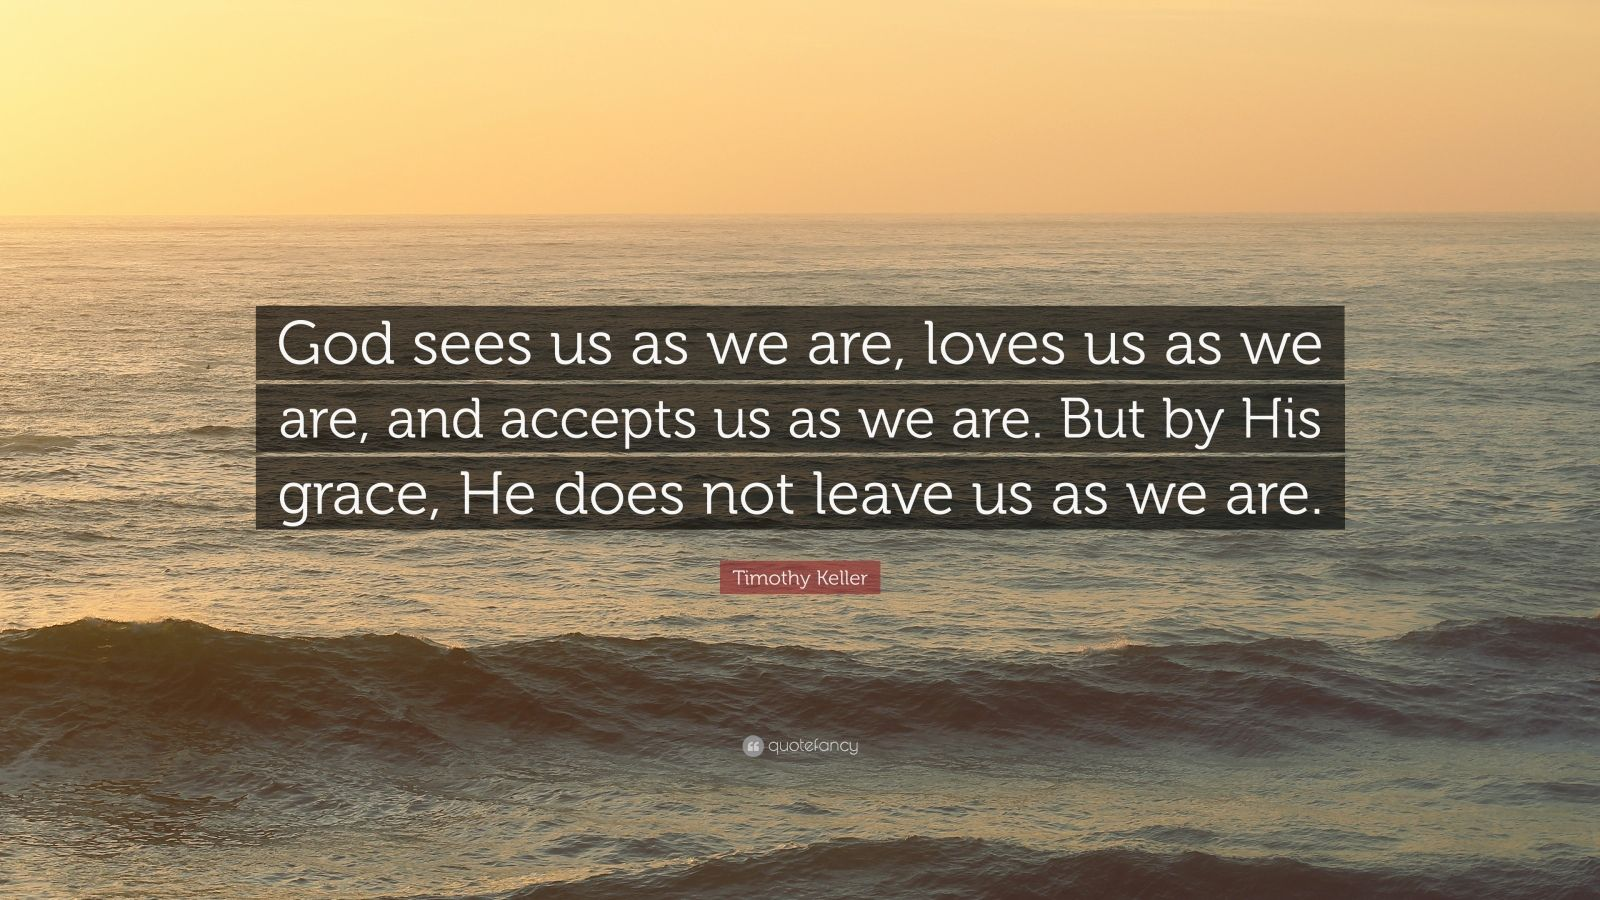 """Timothy Keller Quote: """"God sees us as we are, loves us as we are, and accepts us as we are. But by His grace, He does not leave us as we are."""""""